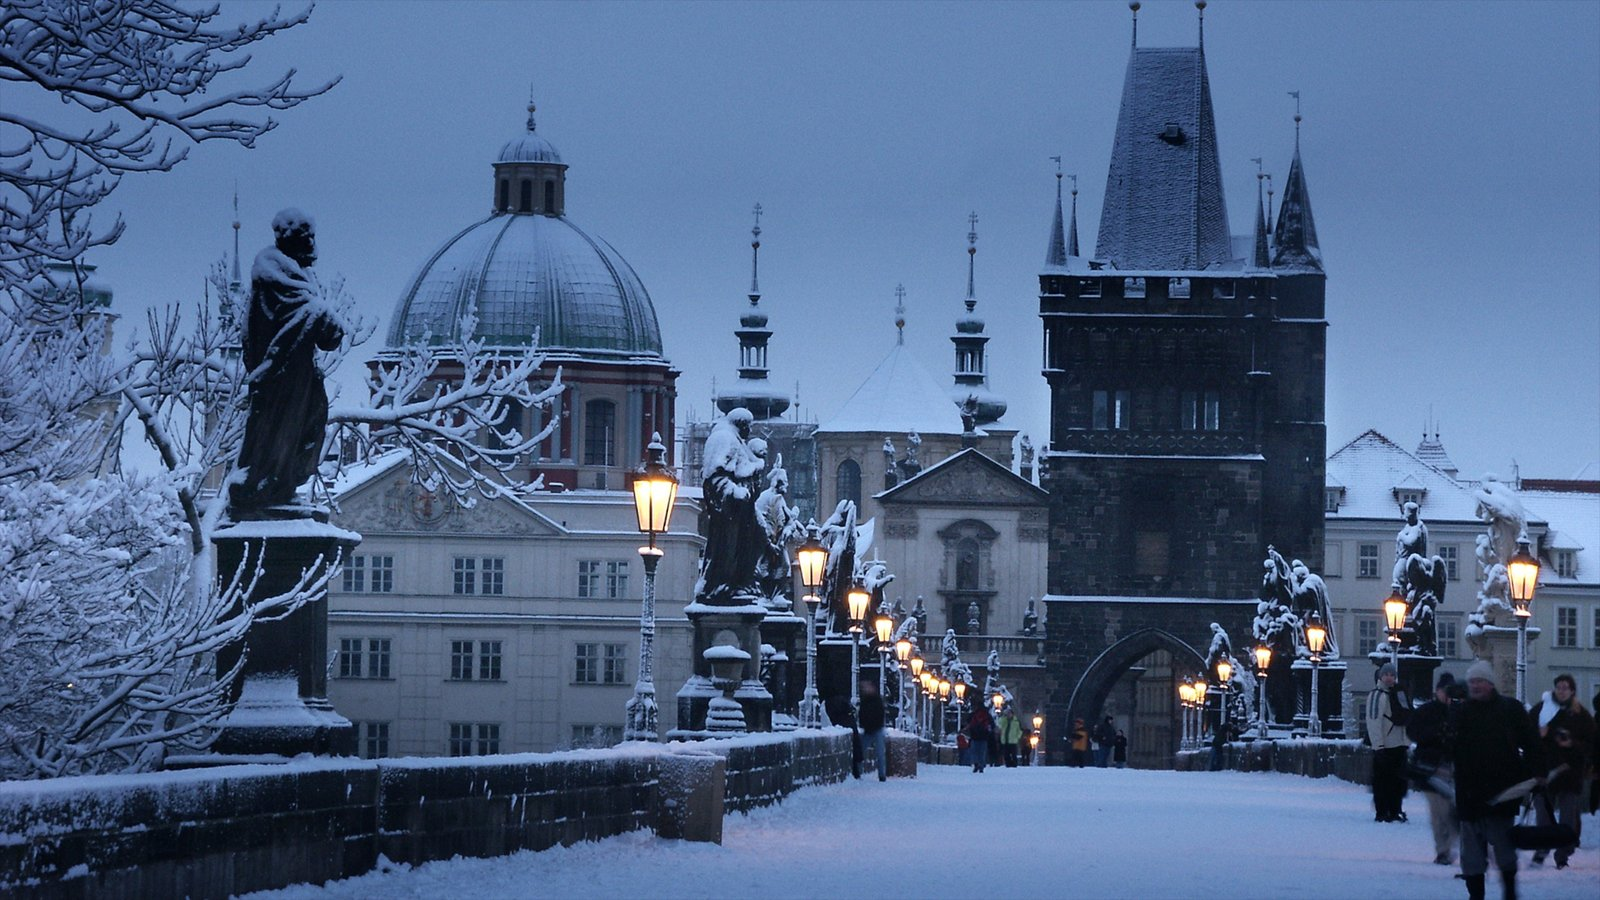 Charles Bridge showing a city, night scenes and art